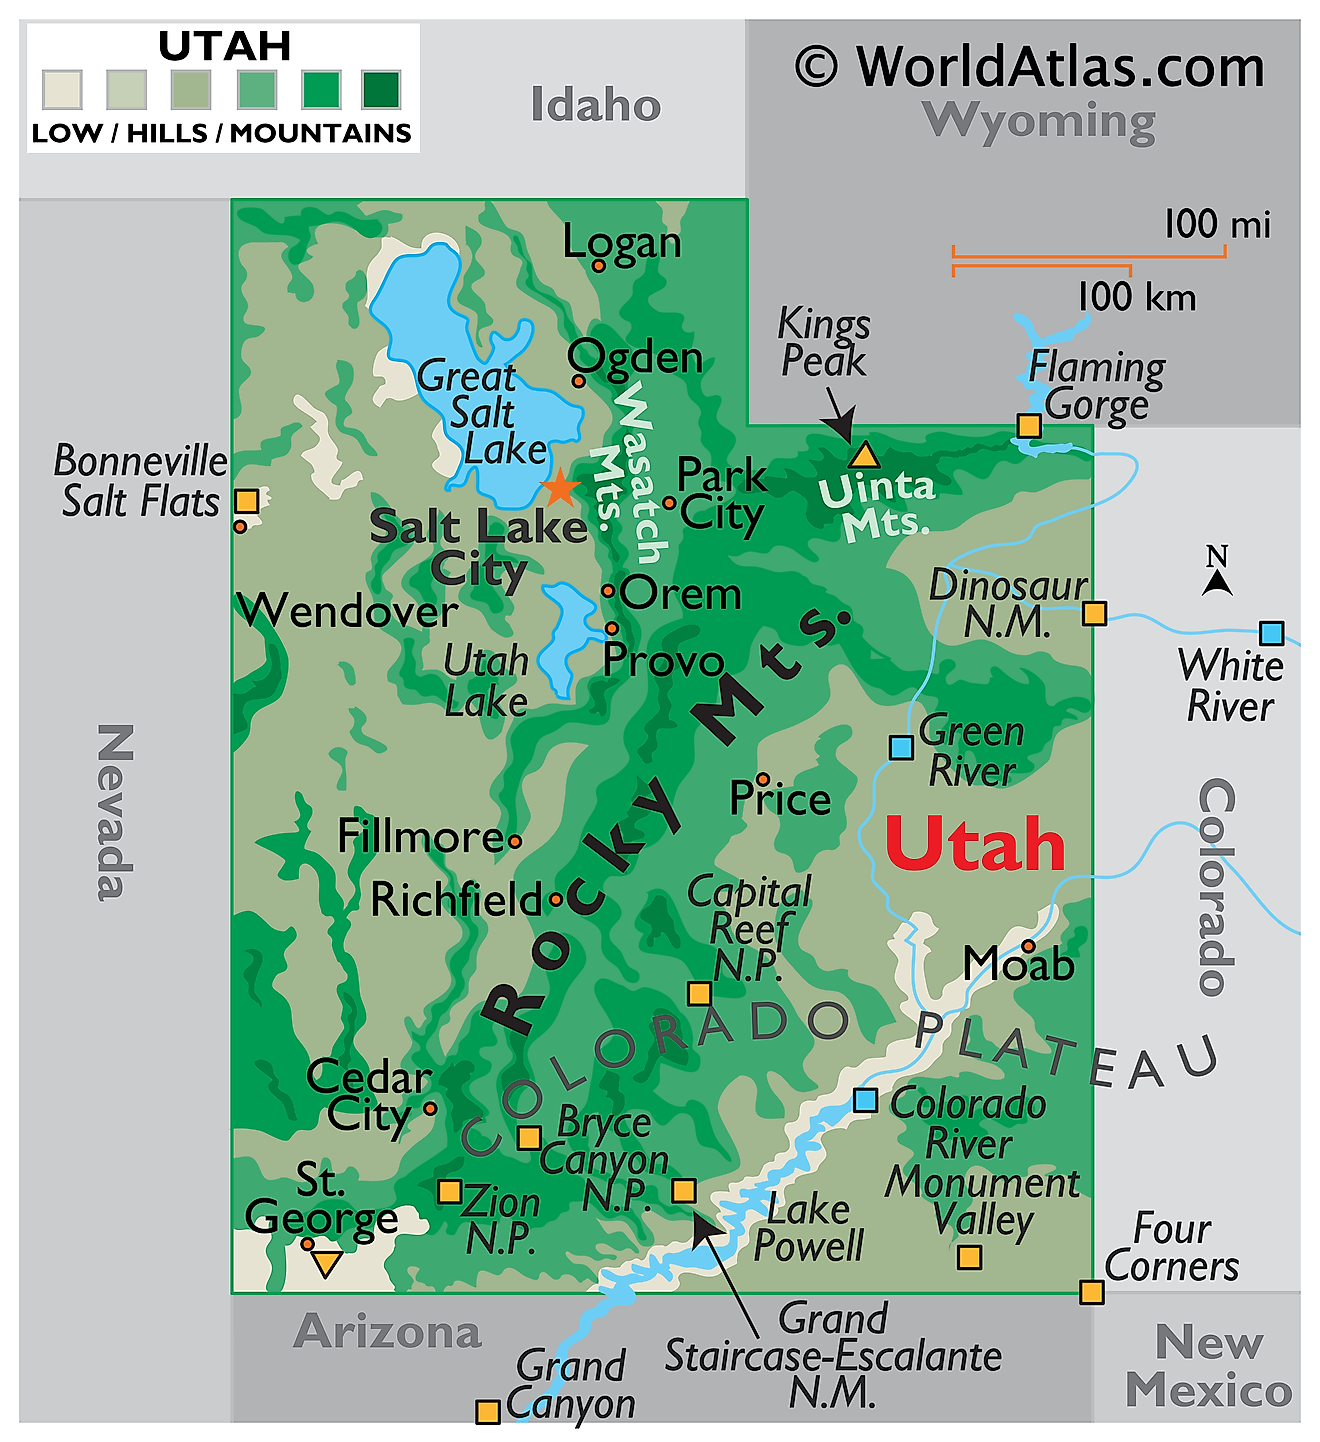 Physical Map of Utah. It shows the physical features of Utah including its mountain ranges, plateau, rivers and major lakes.